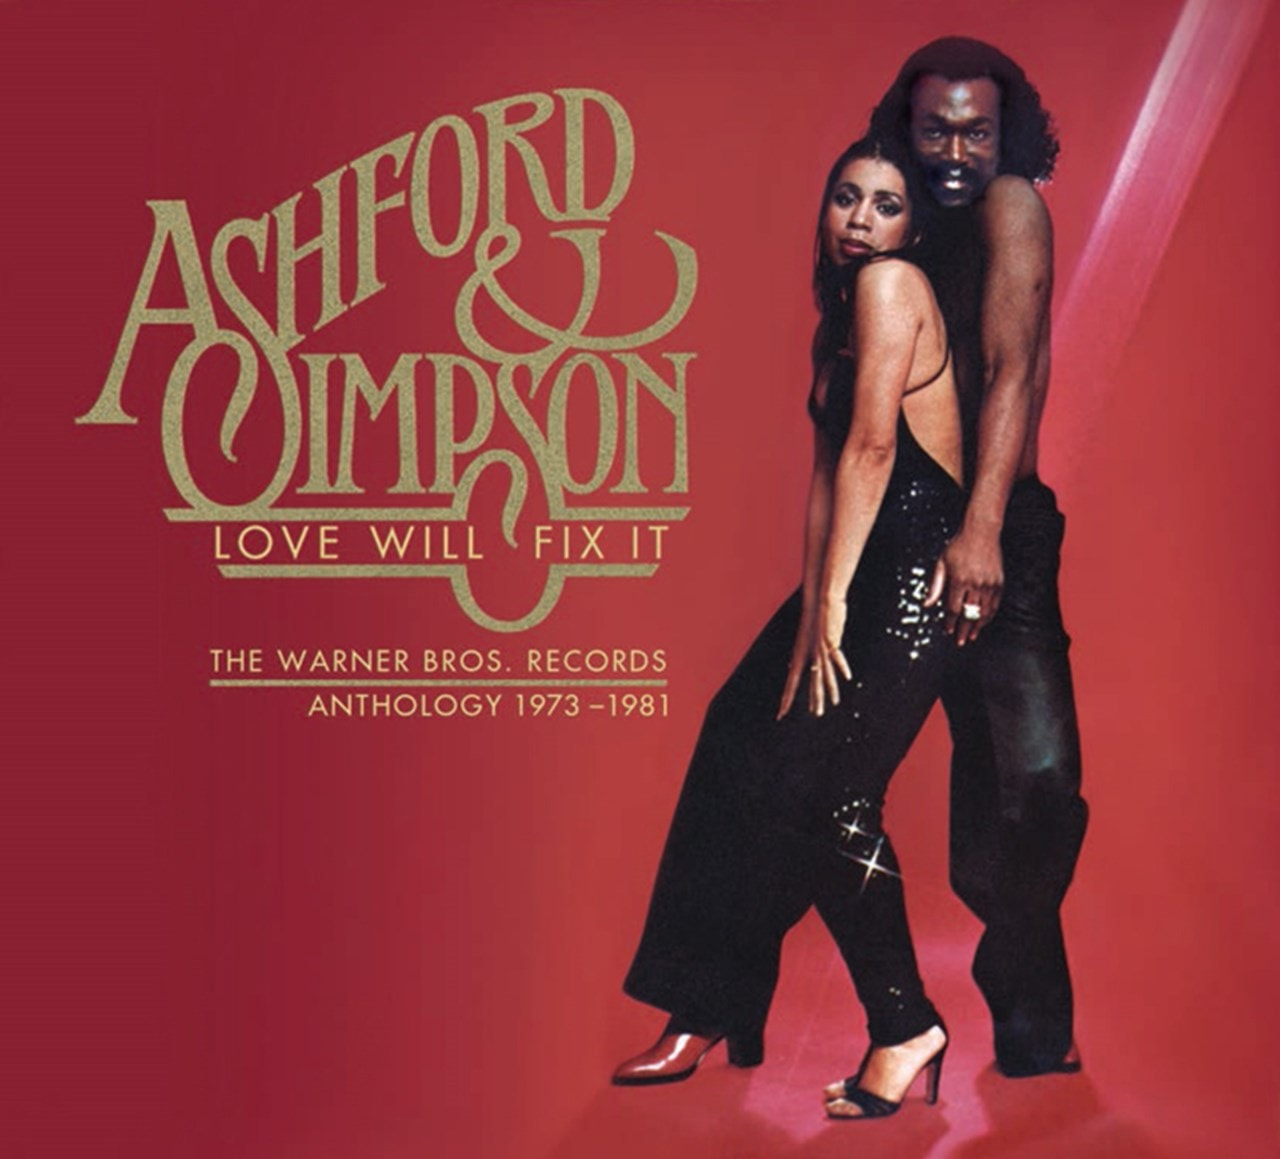 Love Will Fix It: The Warner Bros. Records Anthology 1973-1981 - 1